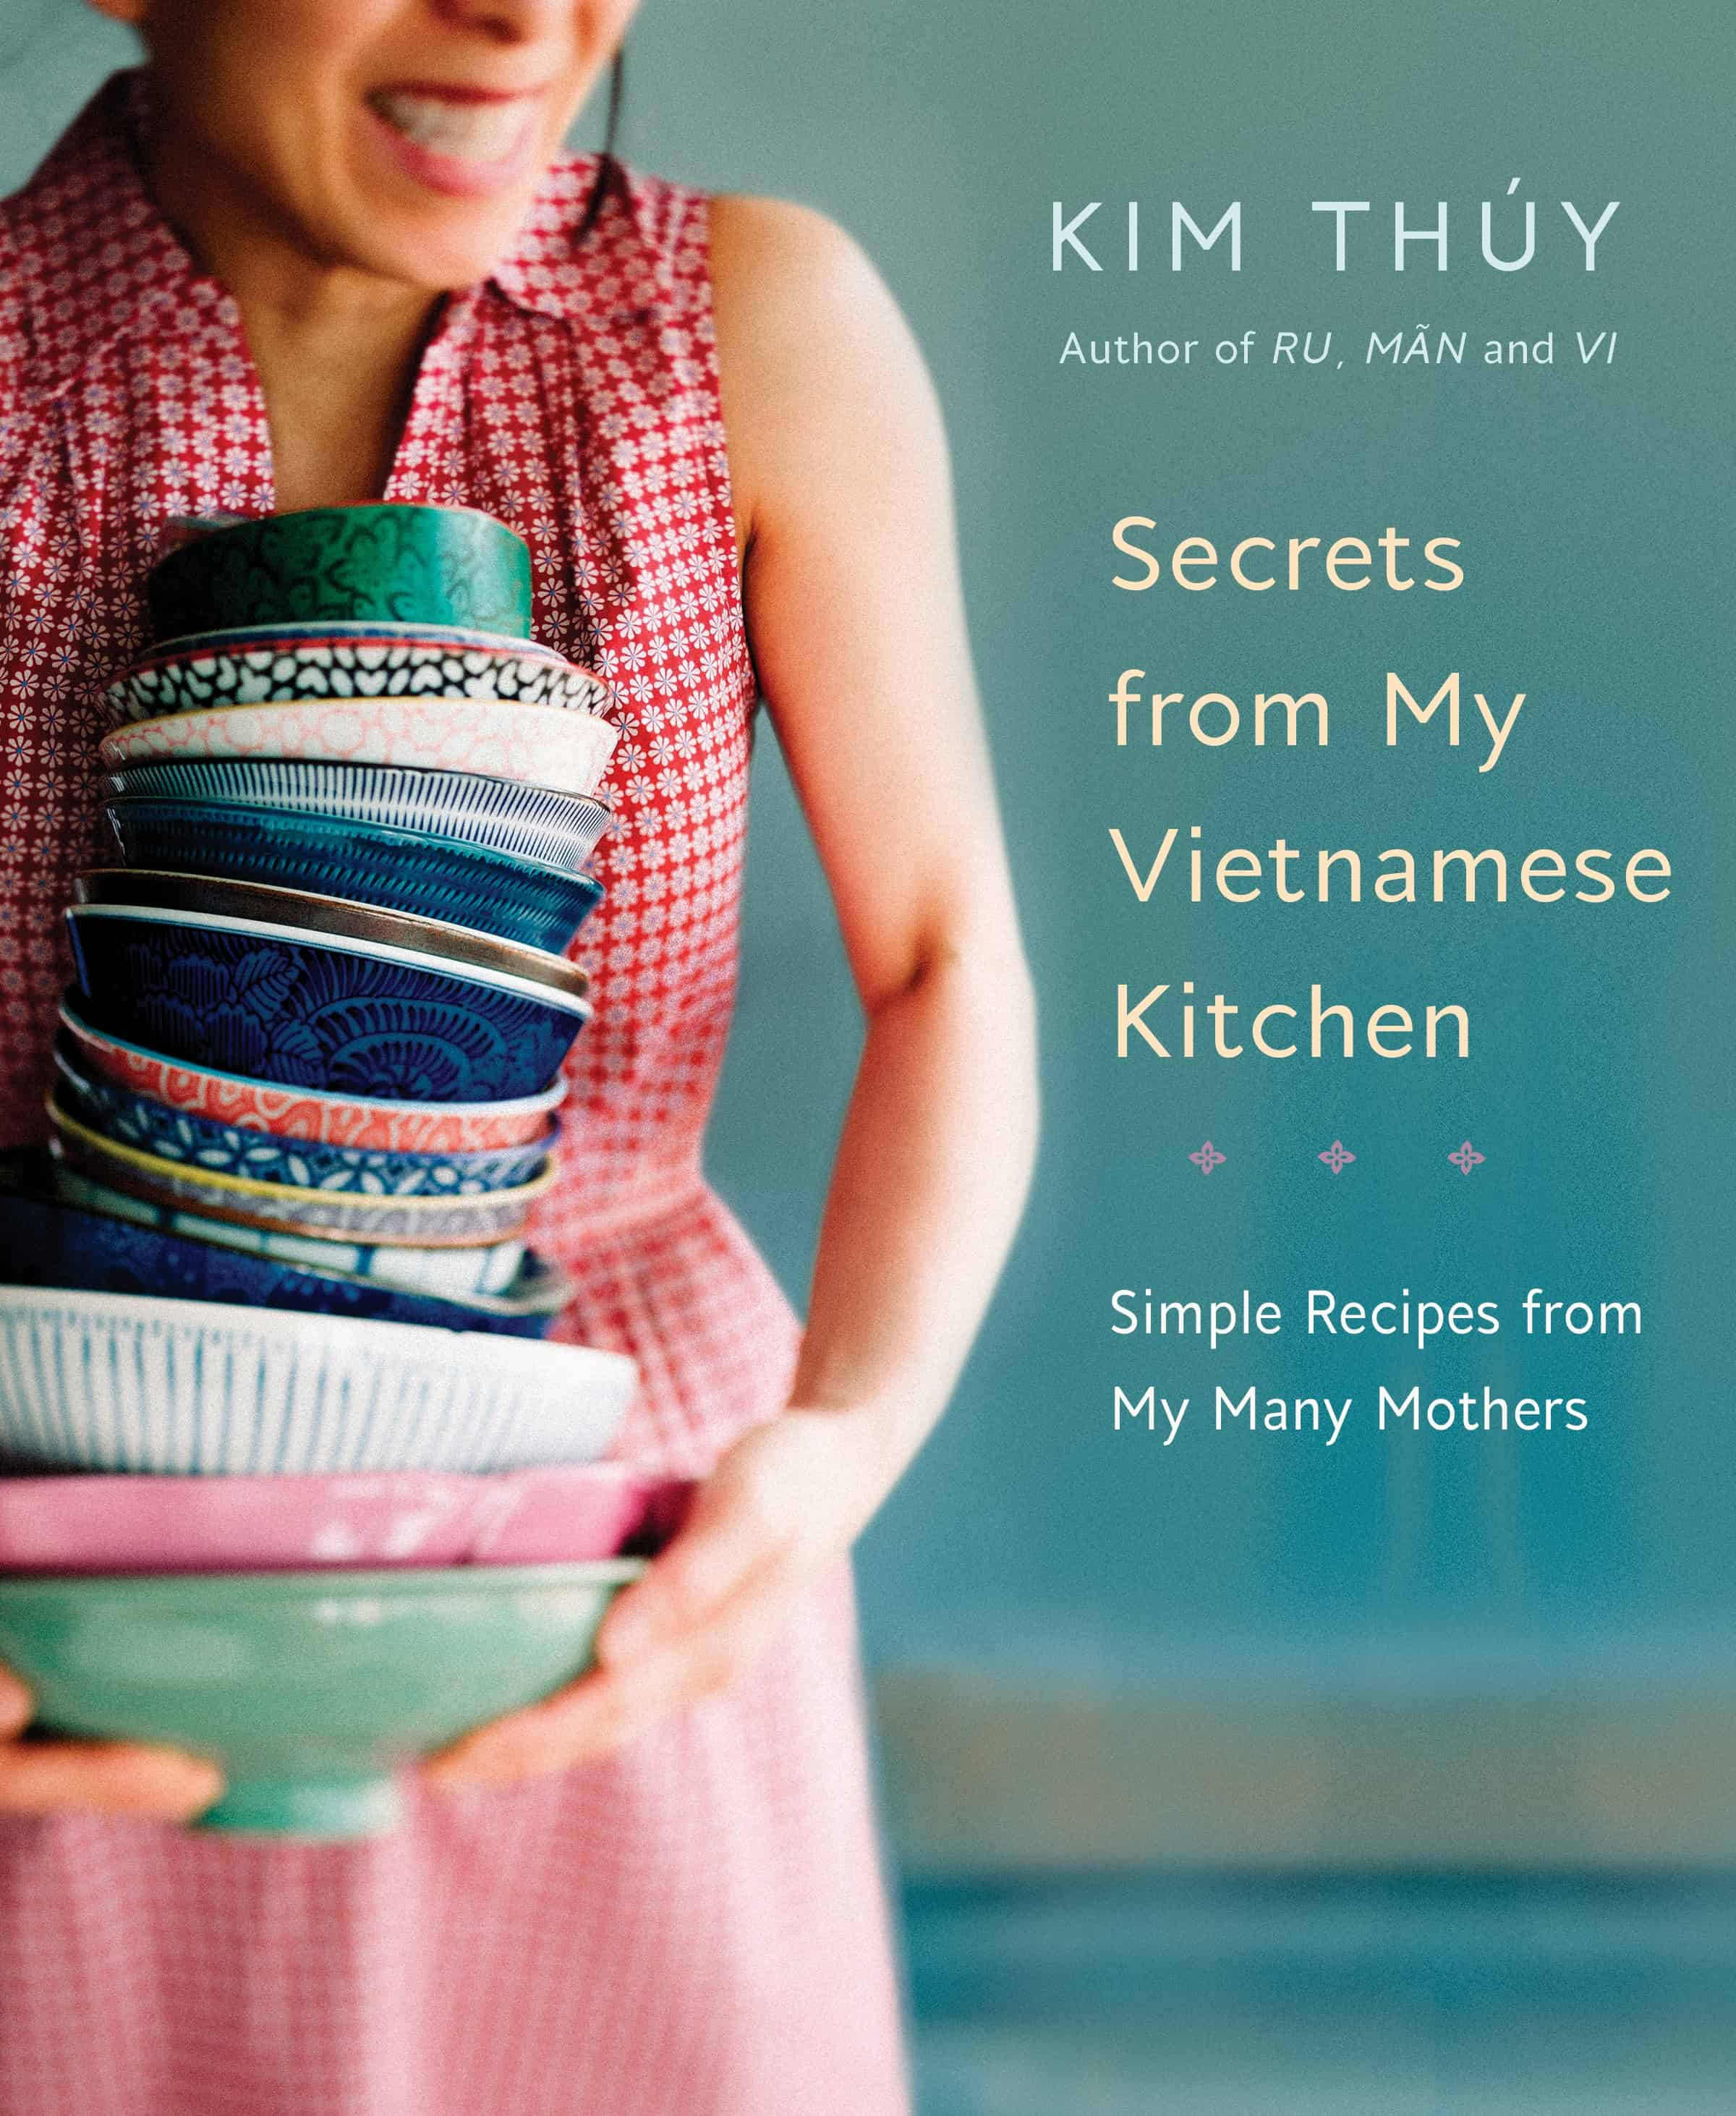 SECRETS FROM MY VIETNAMESE KITCHEN BY KIM THUY | COOKBOOK REVIEW